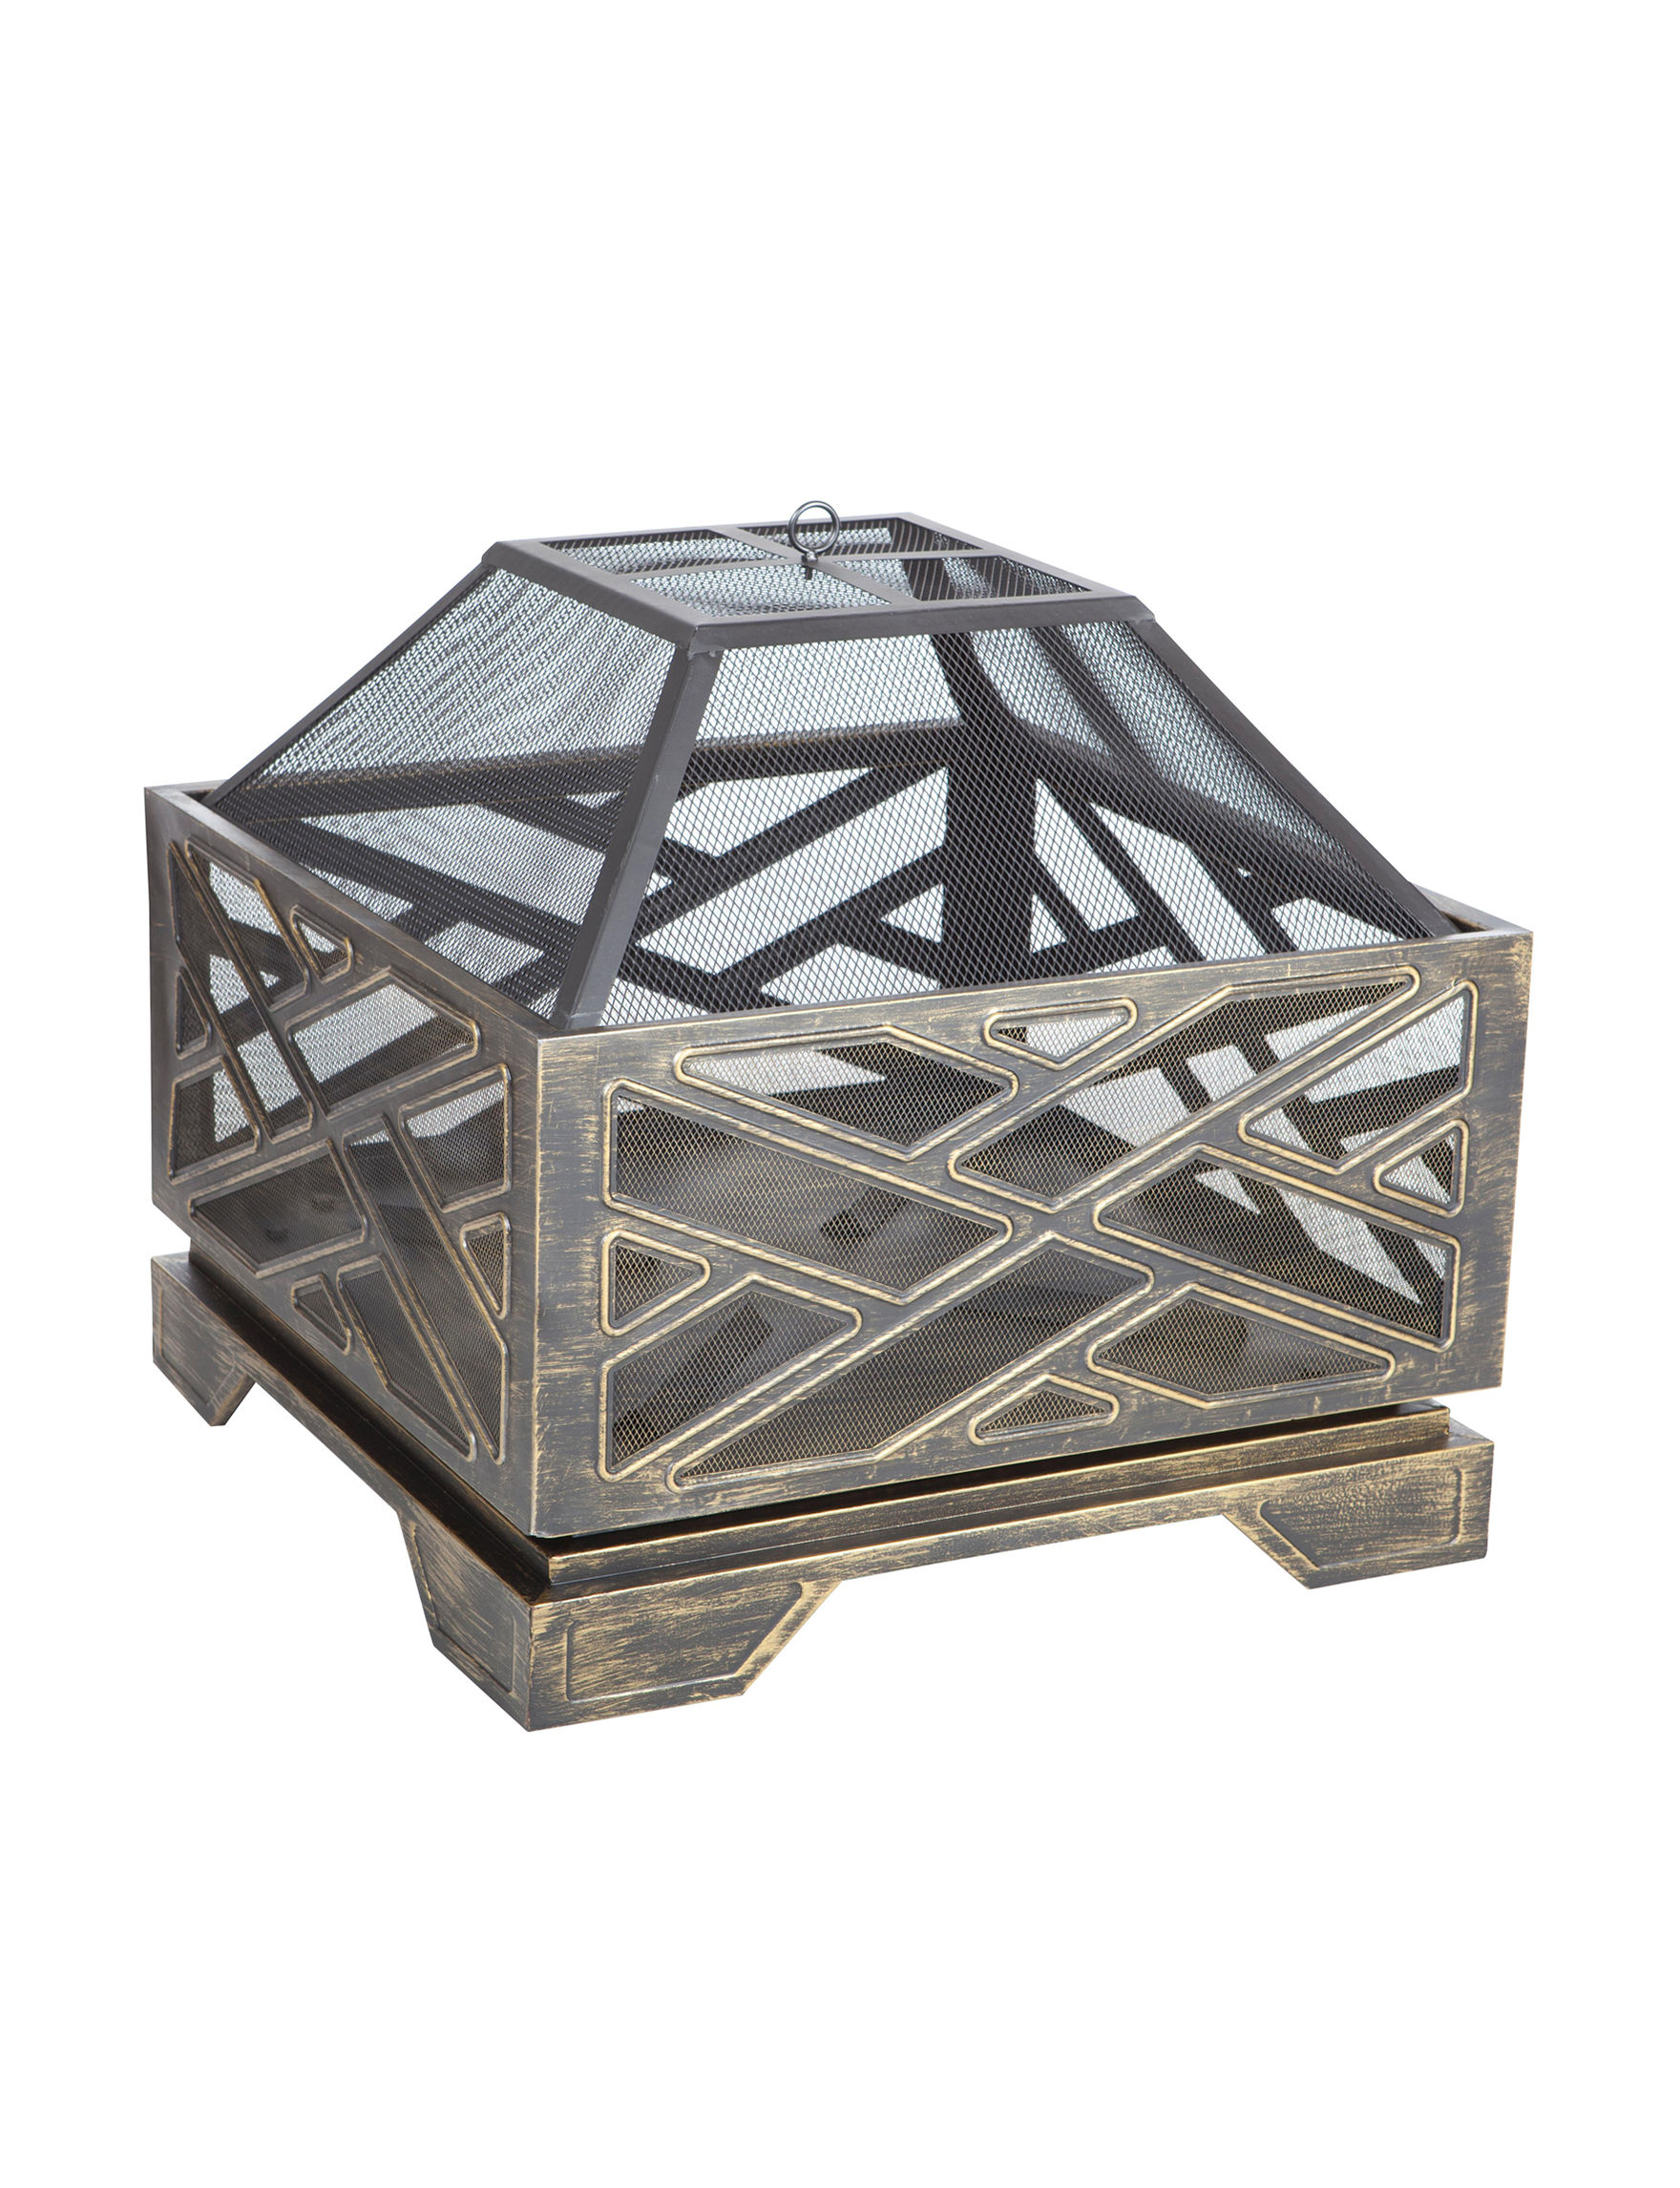 Fire Sense Bronze Outdoor Entertaining Patio & Outdoor Furniture